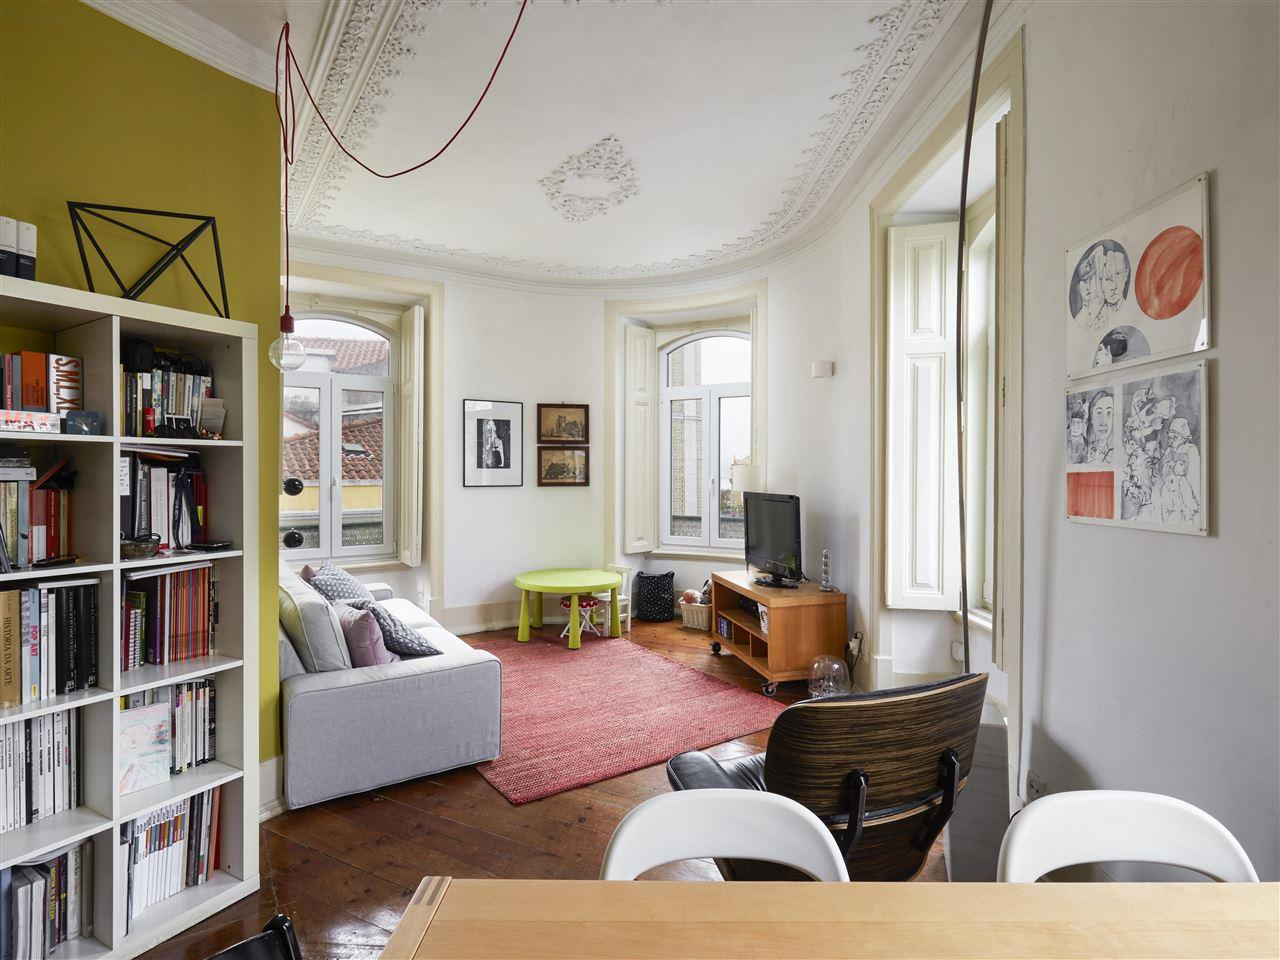 Apartment for Sale at Flat, 2 bedrooms, for Sale Lisboa, Lisboa, 1200-651 Portugal